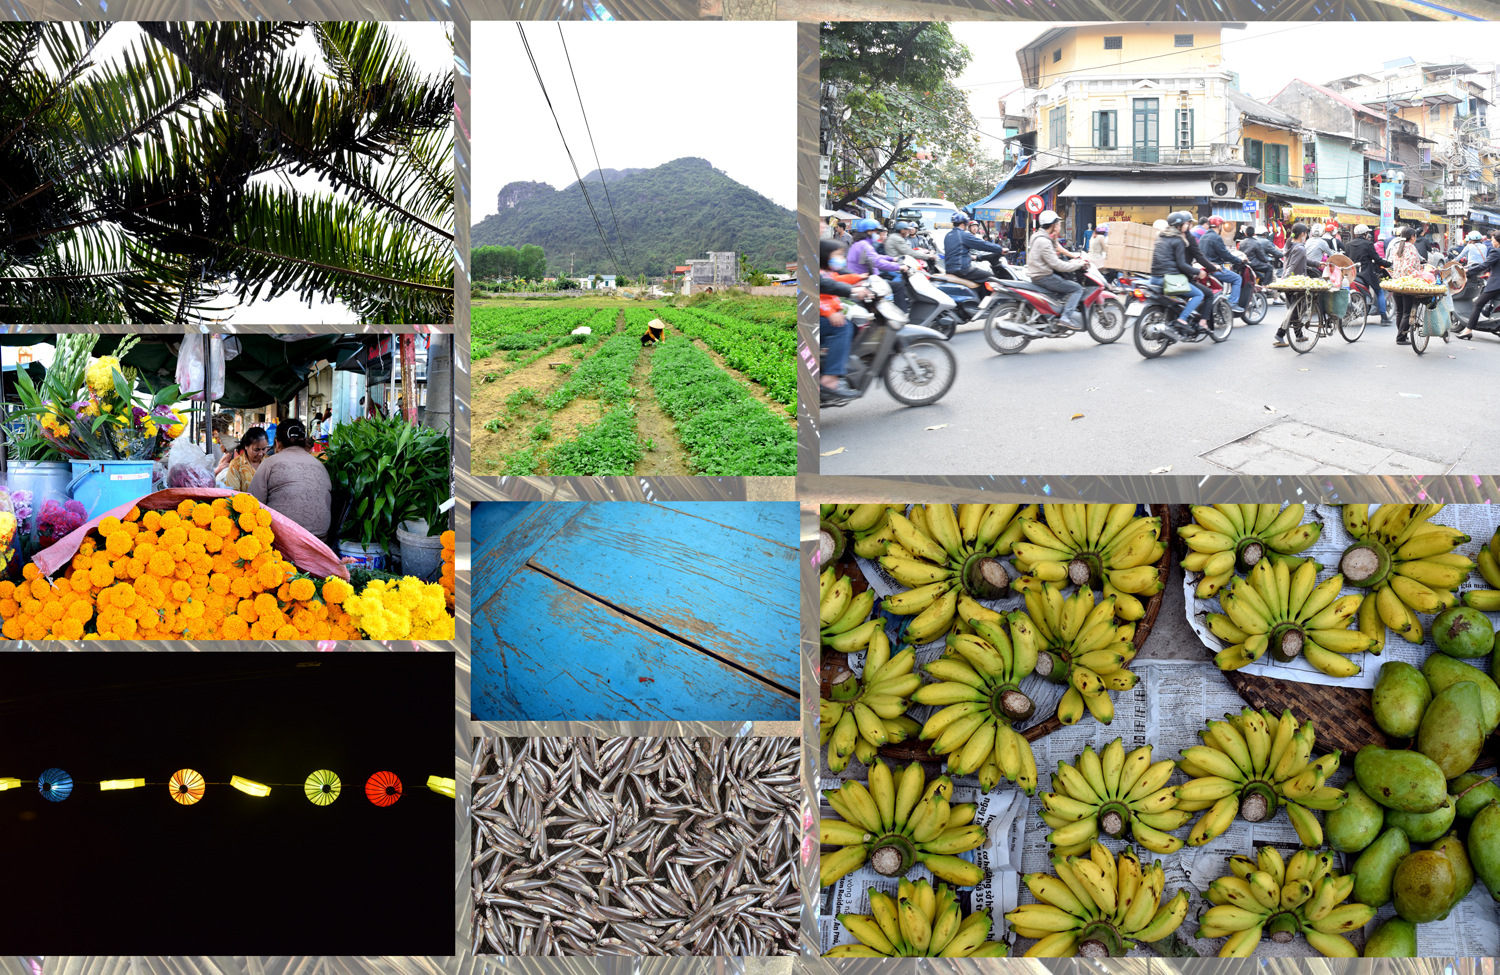 Vietnam, mood board monday, spirit of Vietnam, travel 2015 SE Asia, fayelessler.com Faye Lessler photography, design